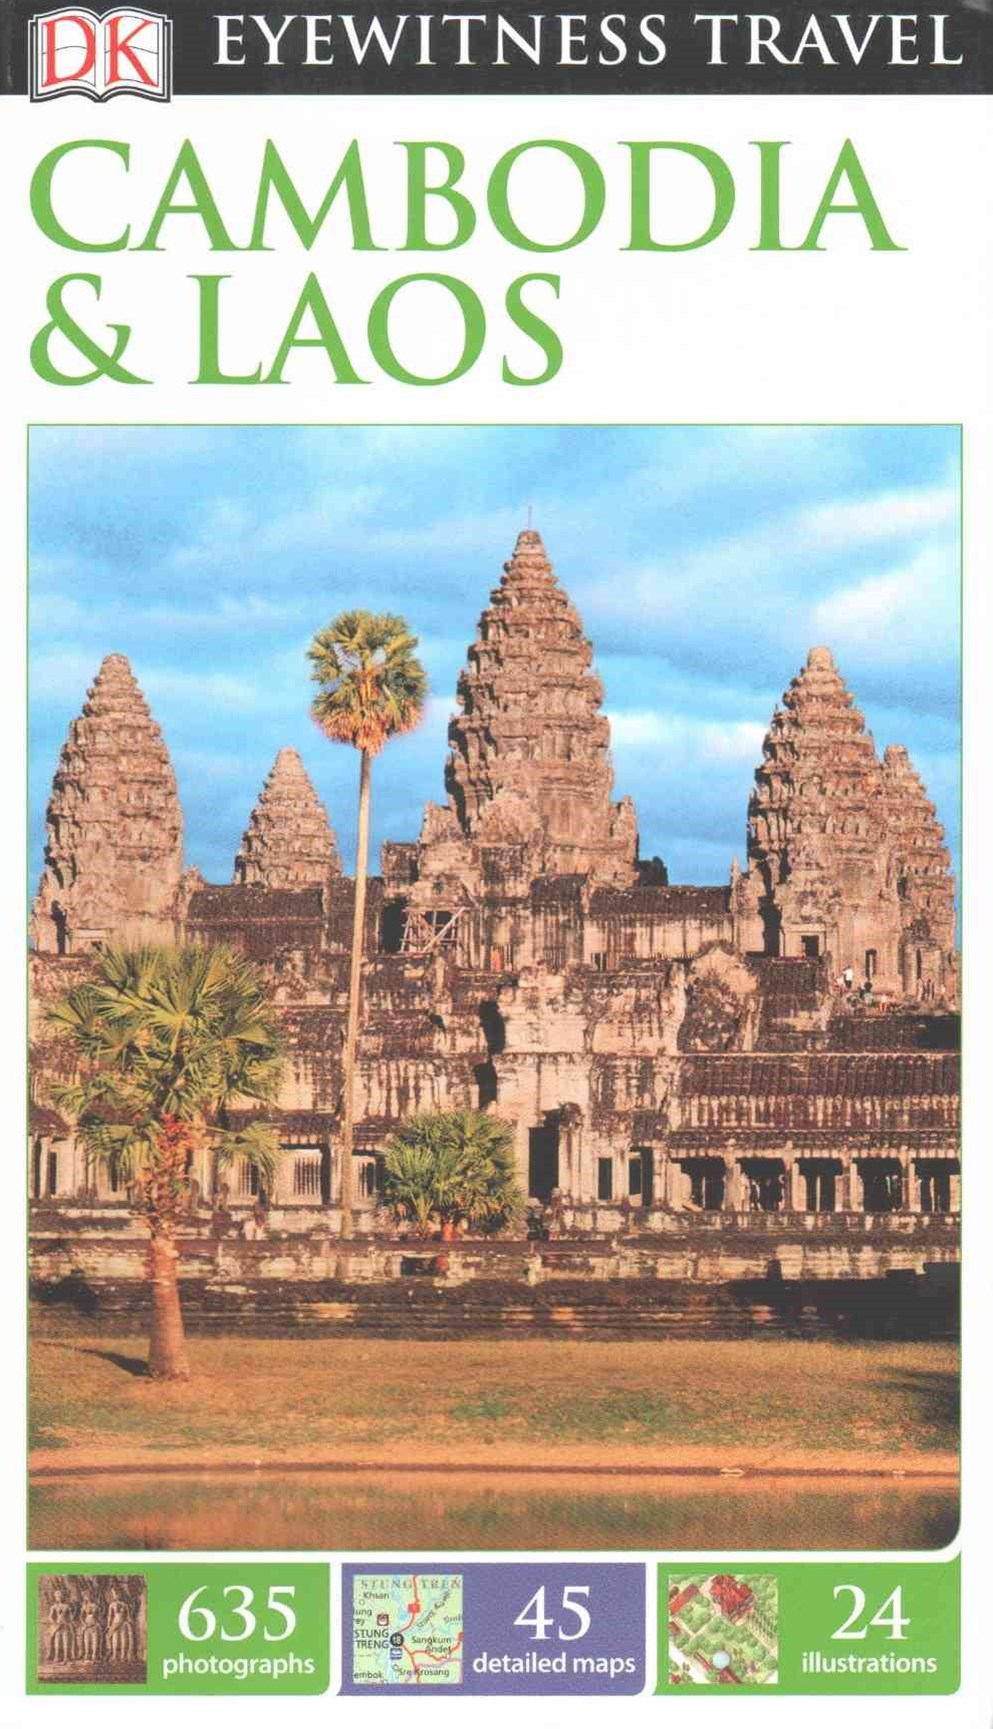 Cambodia Aad Laos: Eyewitness Travel Guide